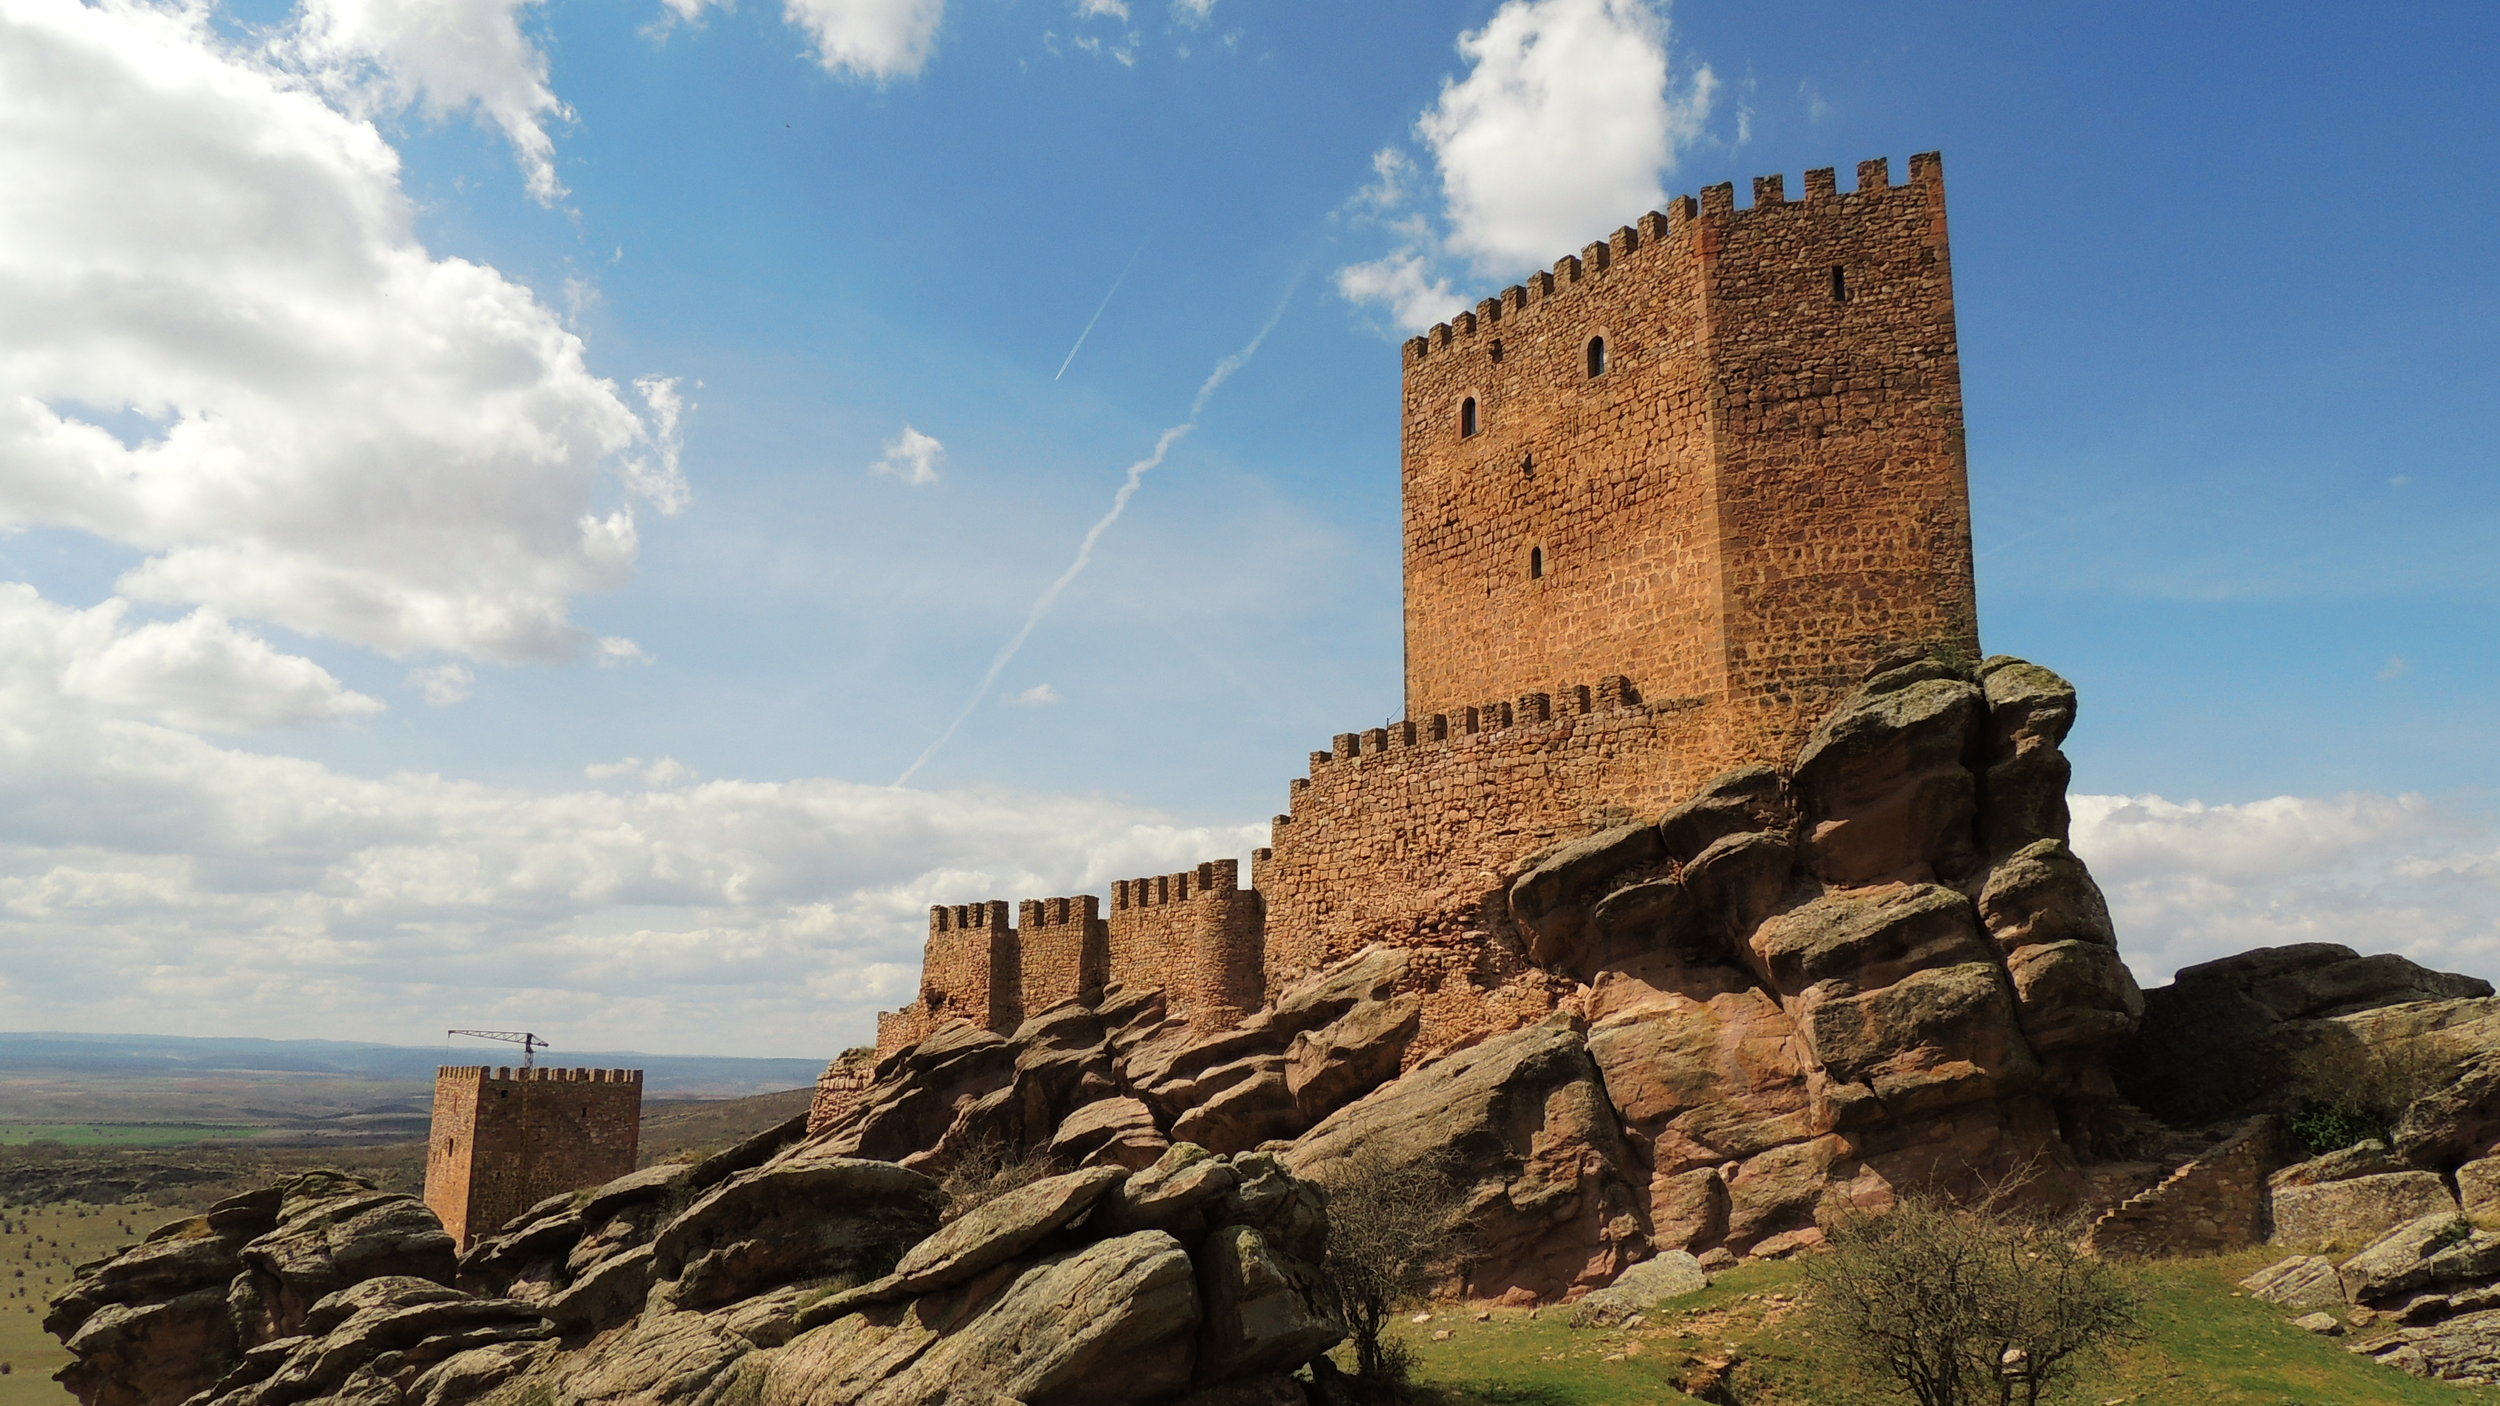 The Castle of Zafra in Guadalajara, Spain; a filming location for season 6 of  Game of Thrones